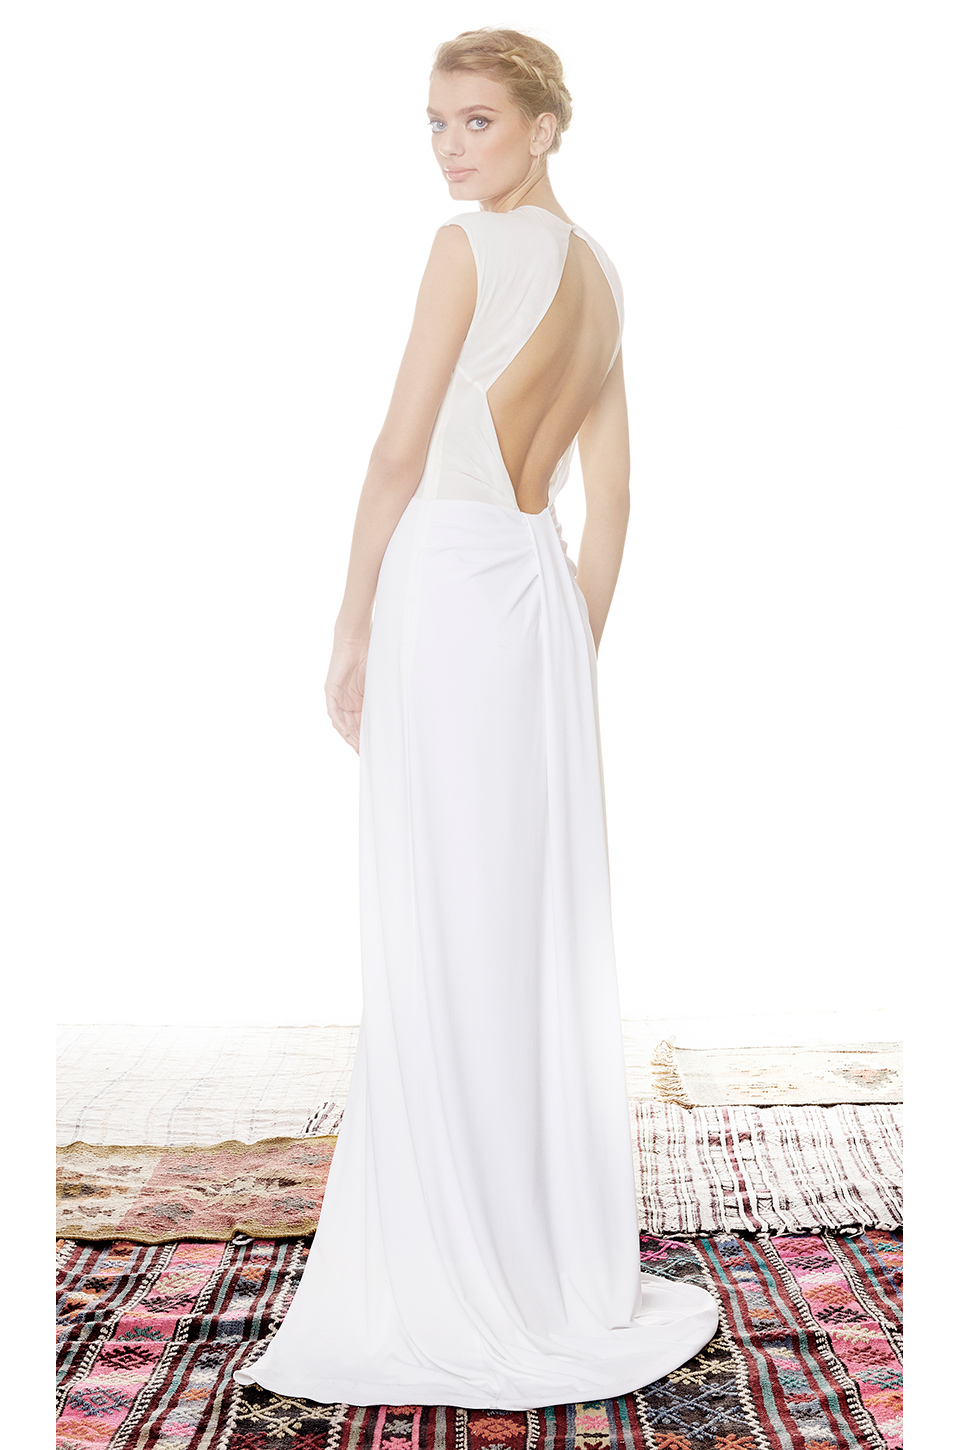 REVOLVE Clothing 2015 Wedding Gown Collection